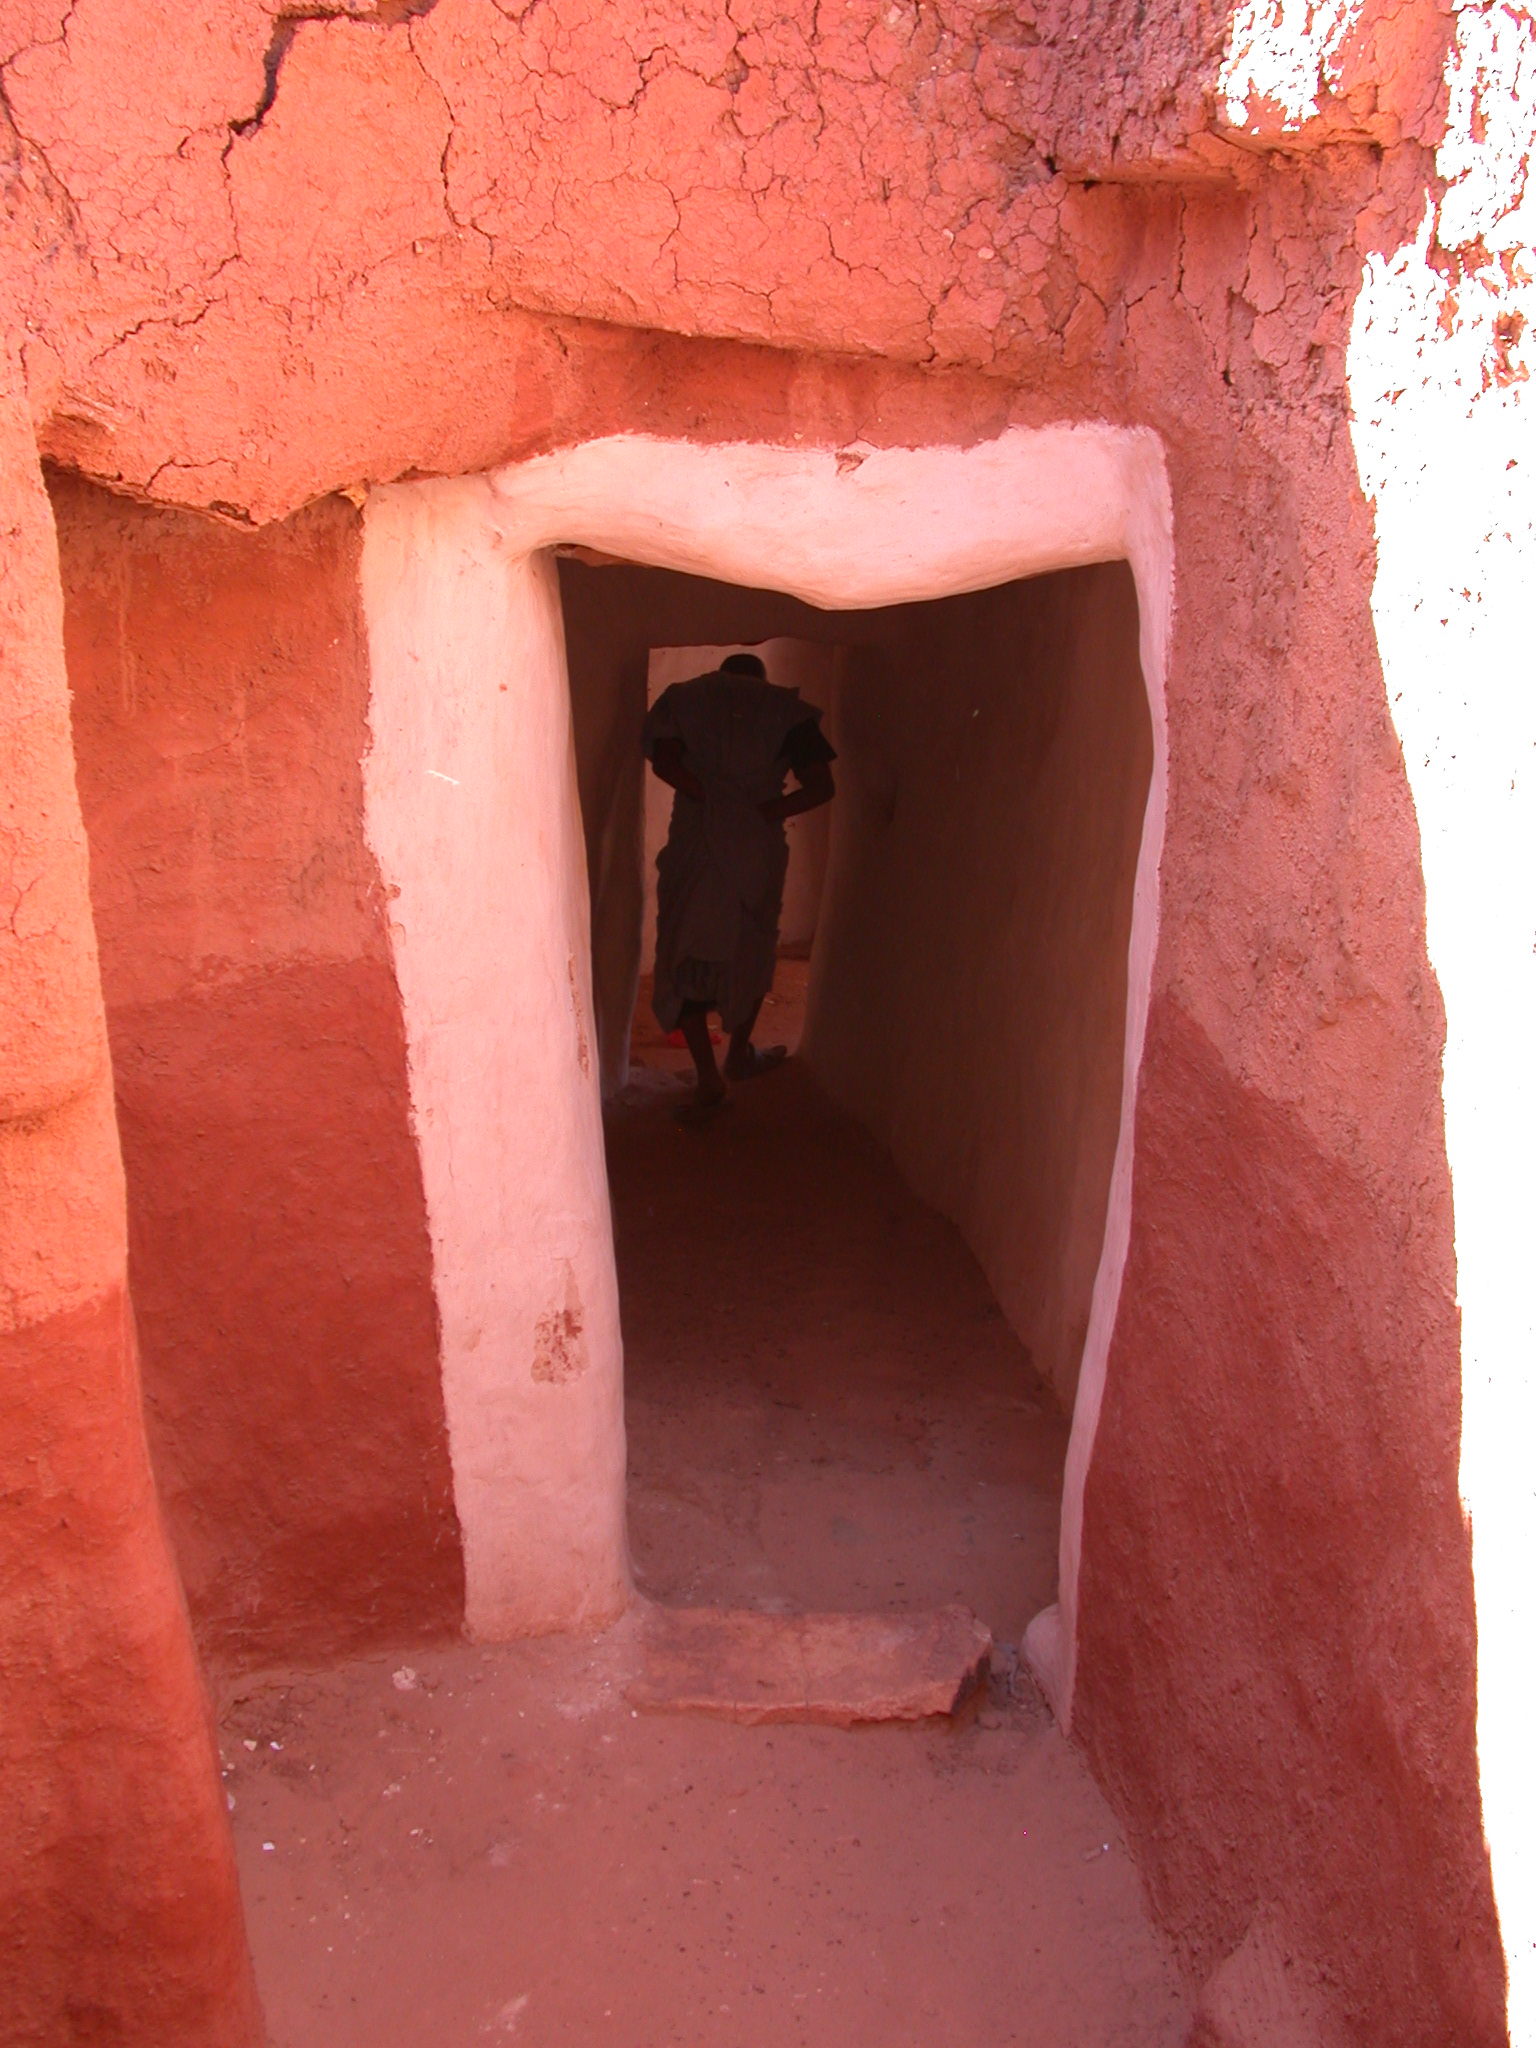 Interior Doorway in Ancient City of Oulata, Mauritania